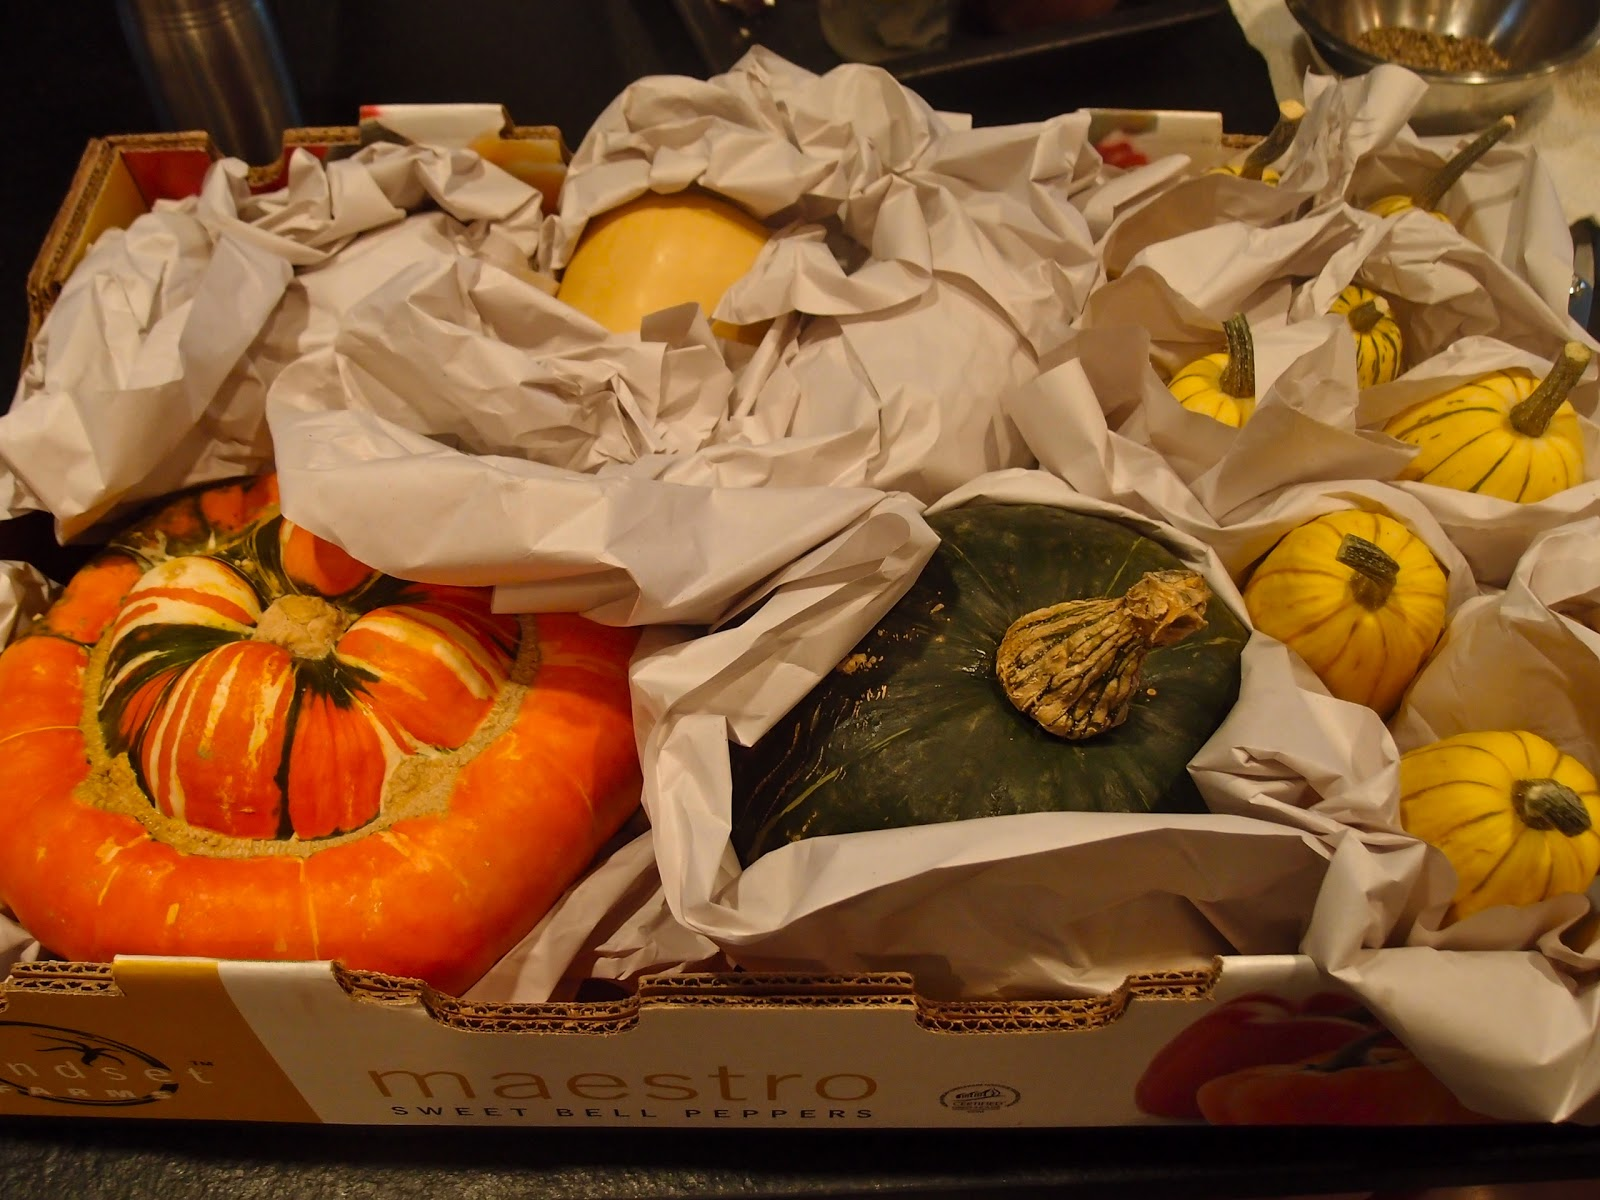 Storing Winter Squash #CB3C00